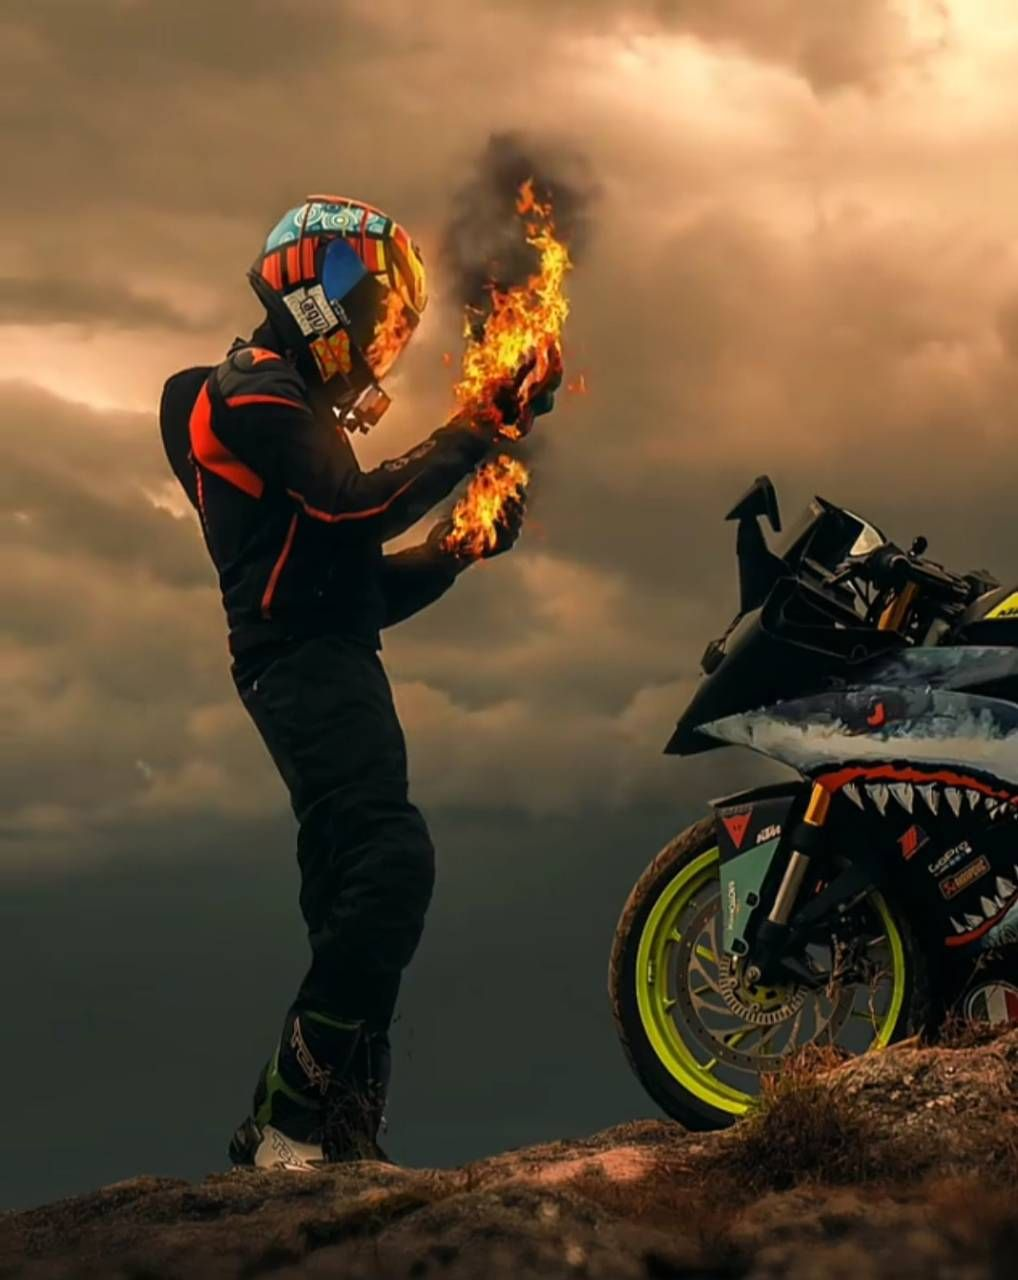 Download Rider Viperrider Wallpaper By Viperpilotktm B3 Free On Zedge Now Browse Millions Of Popular Bike Wall Biker Photography Bike Photoshoot Bike Pic Download ktm motard wallpaper pics